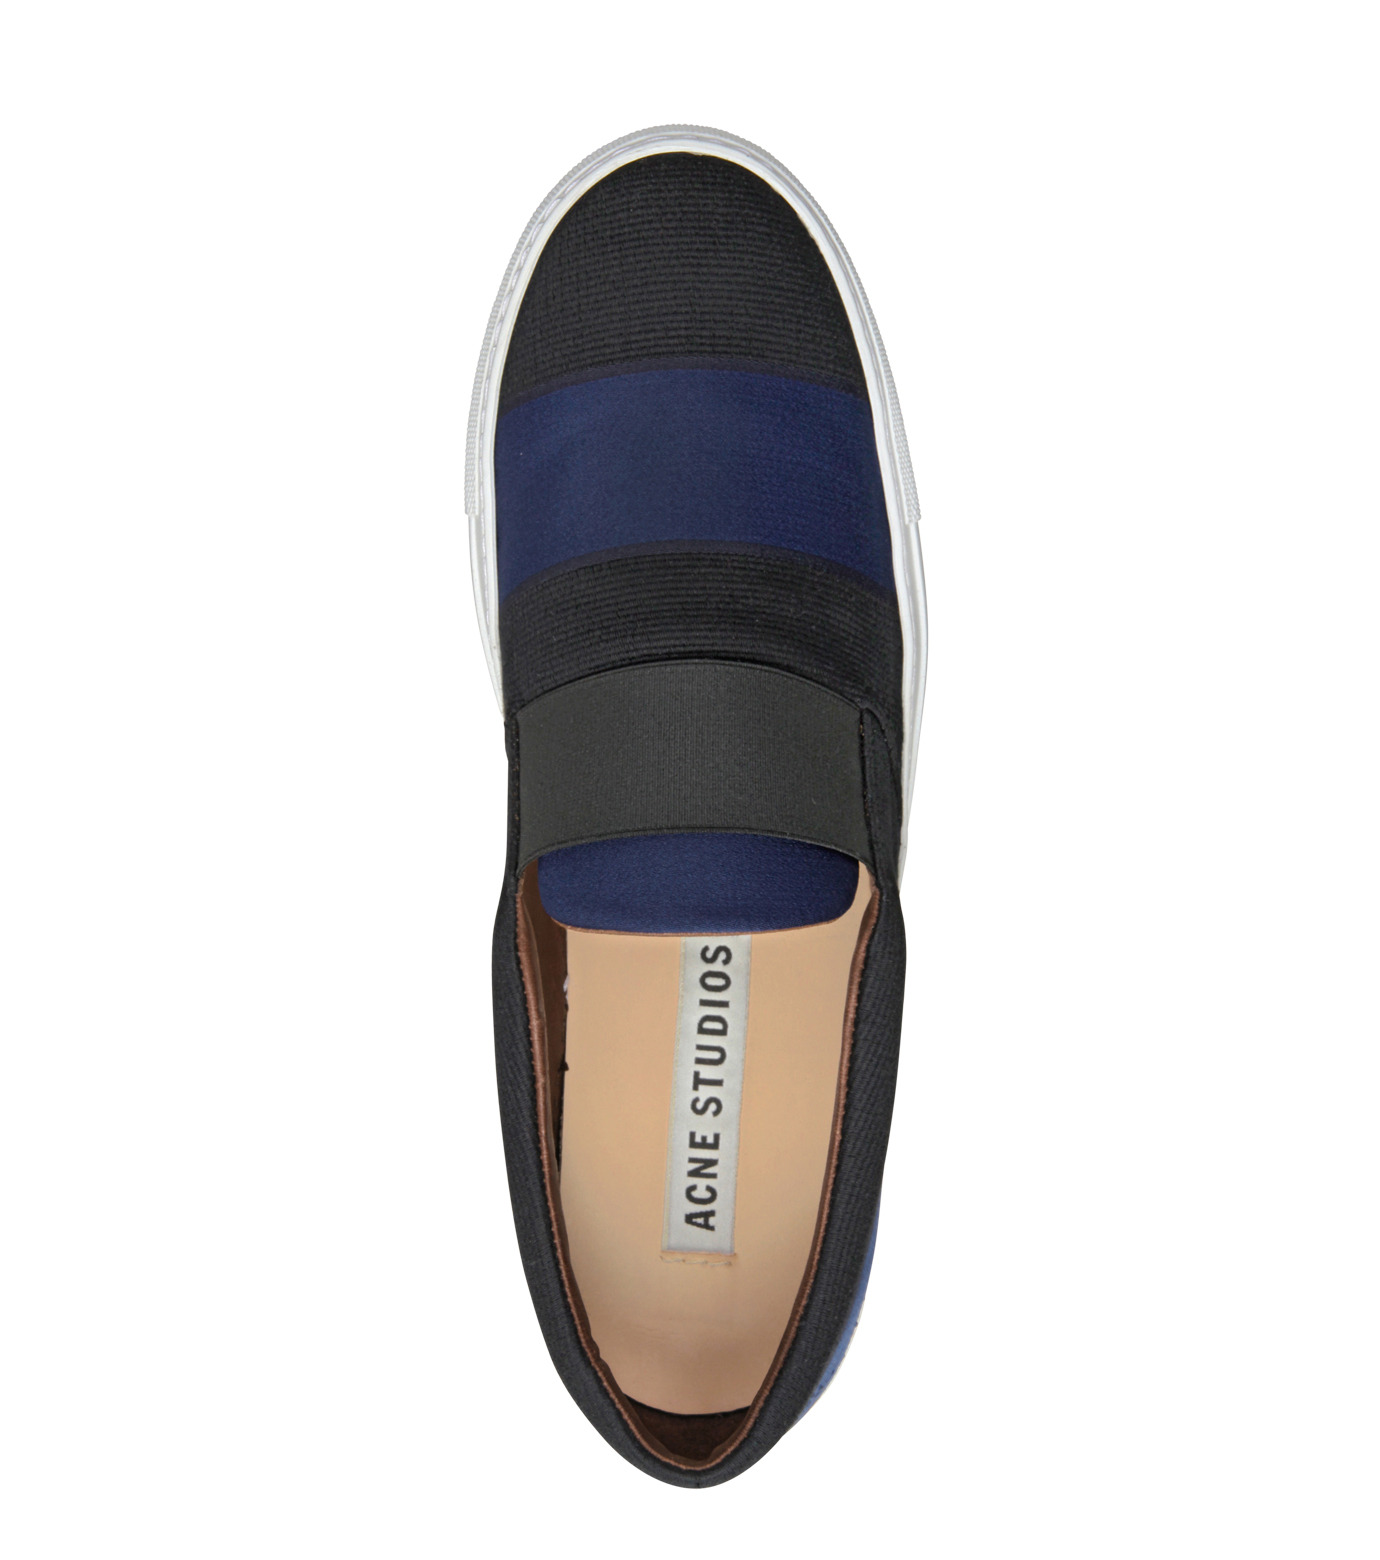 ACNE STUDIOS(アクネ)のSlip on-BLACK-HANS-COTTON-13 拡大詳細画像5